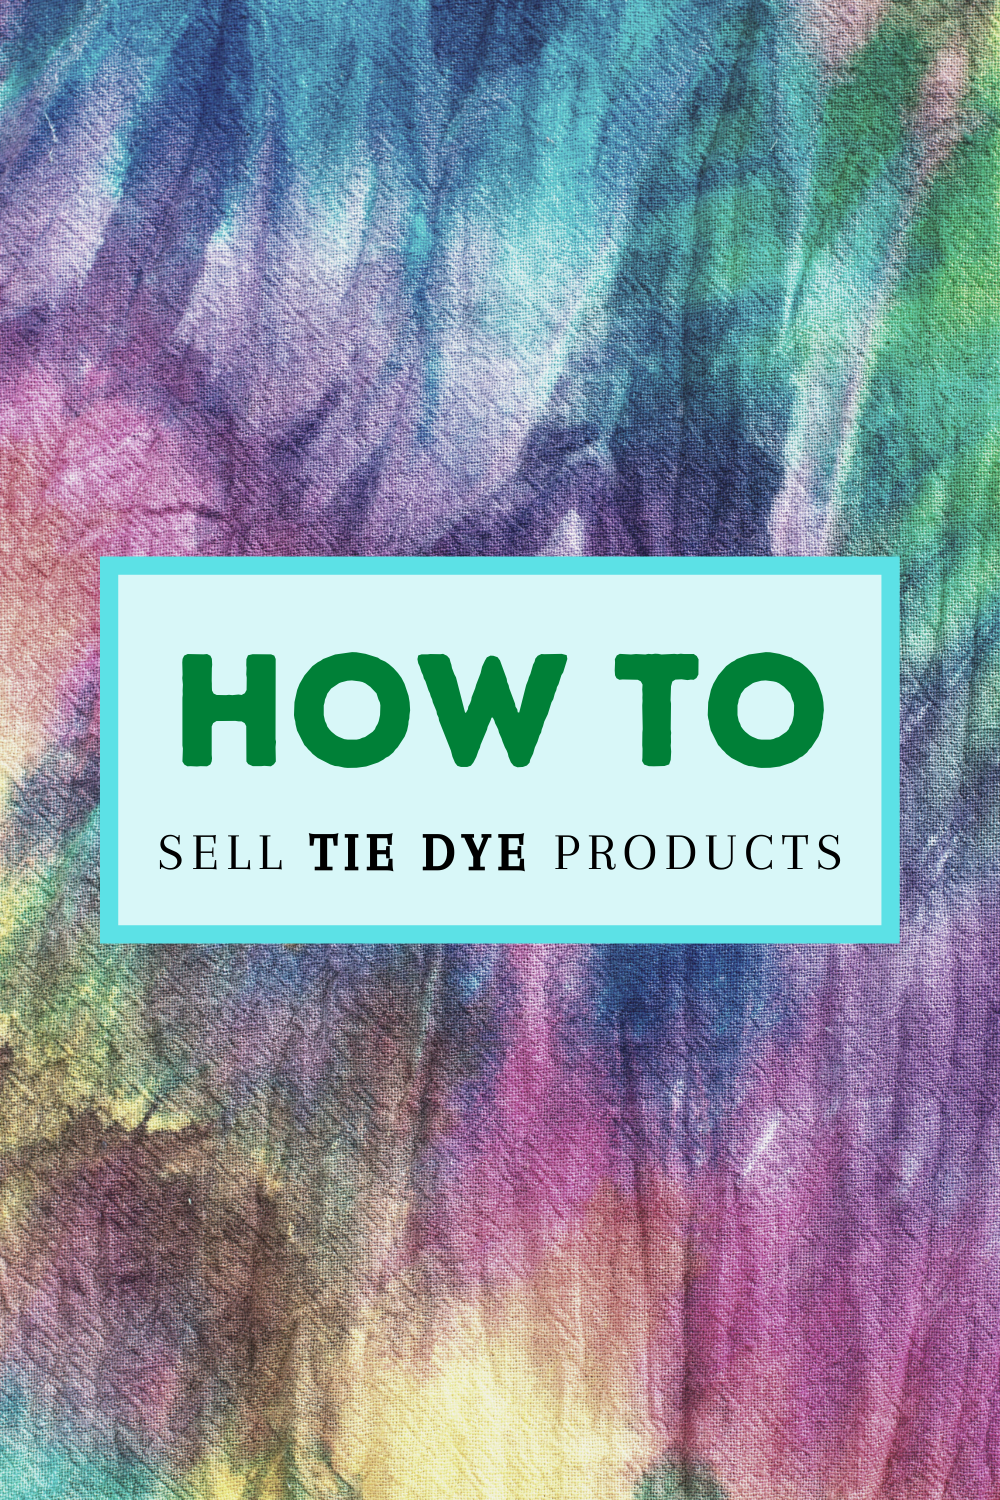 How to Sell Tie Dye Products